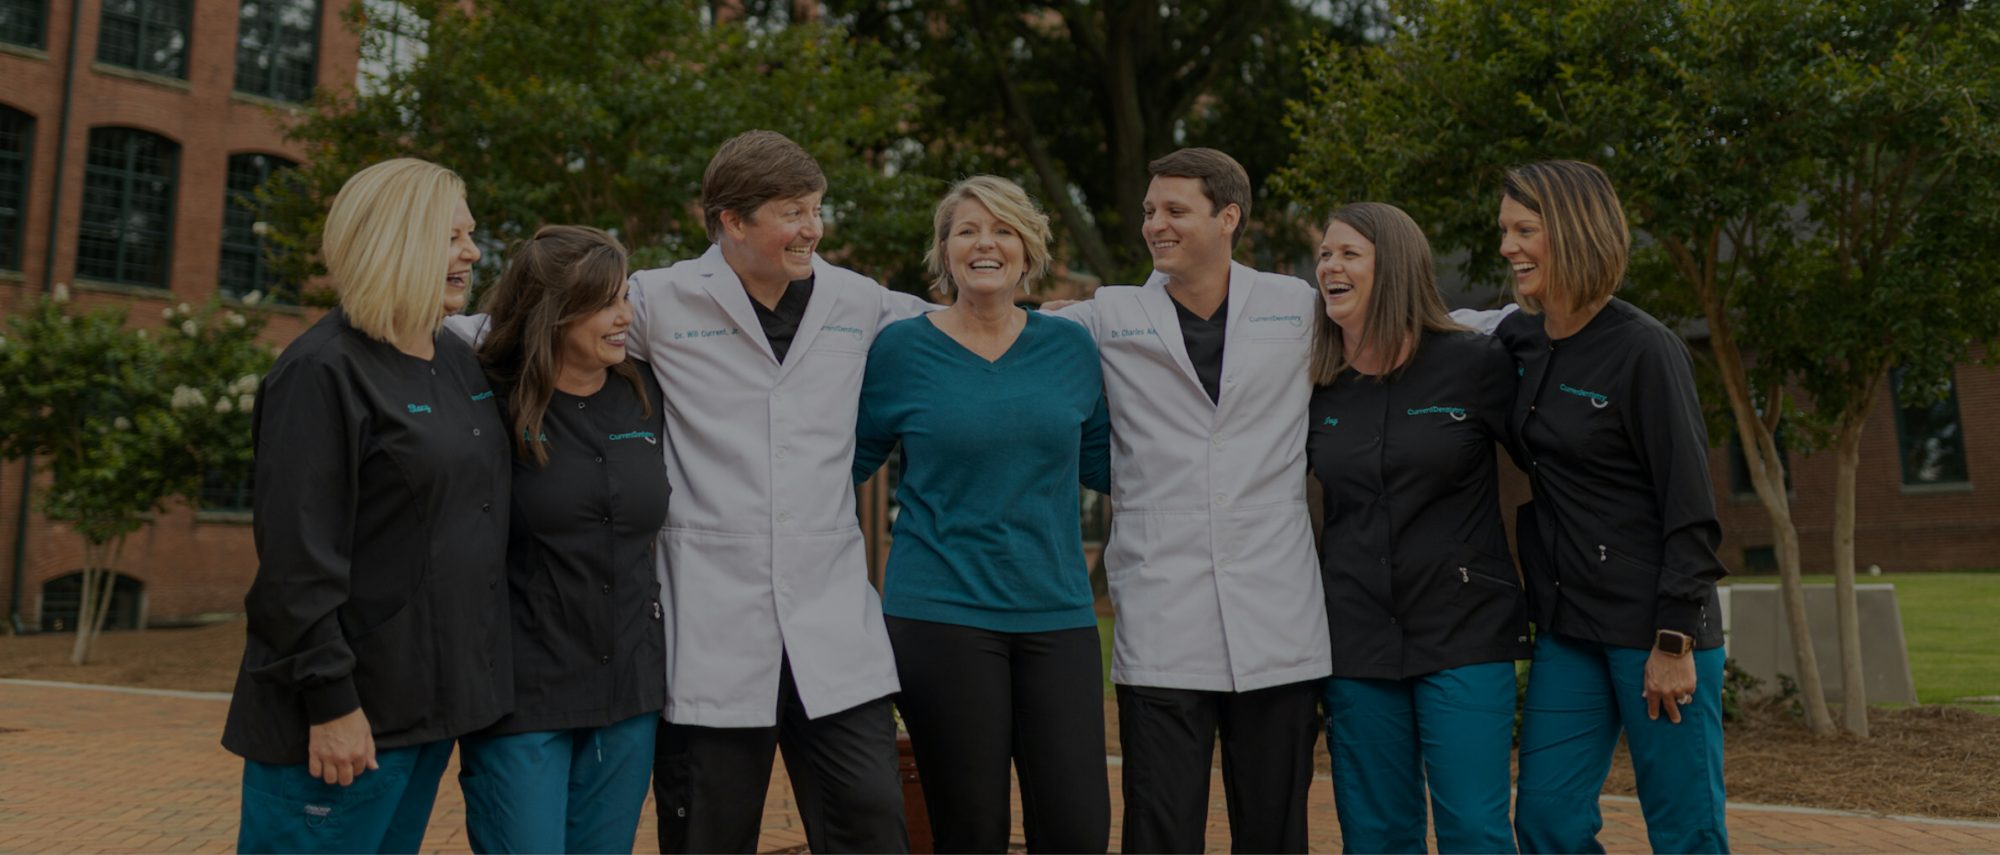 Current Dentistry Staff Standing Arm and Arm Together Laughing Outside